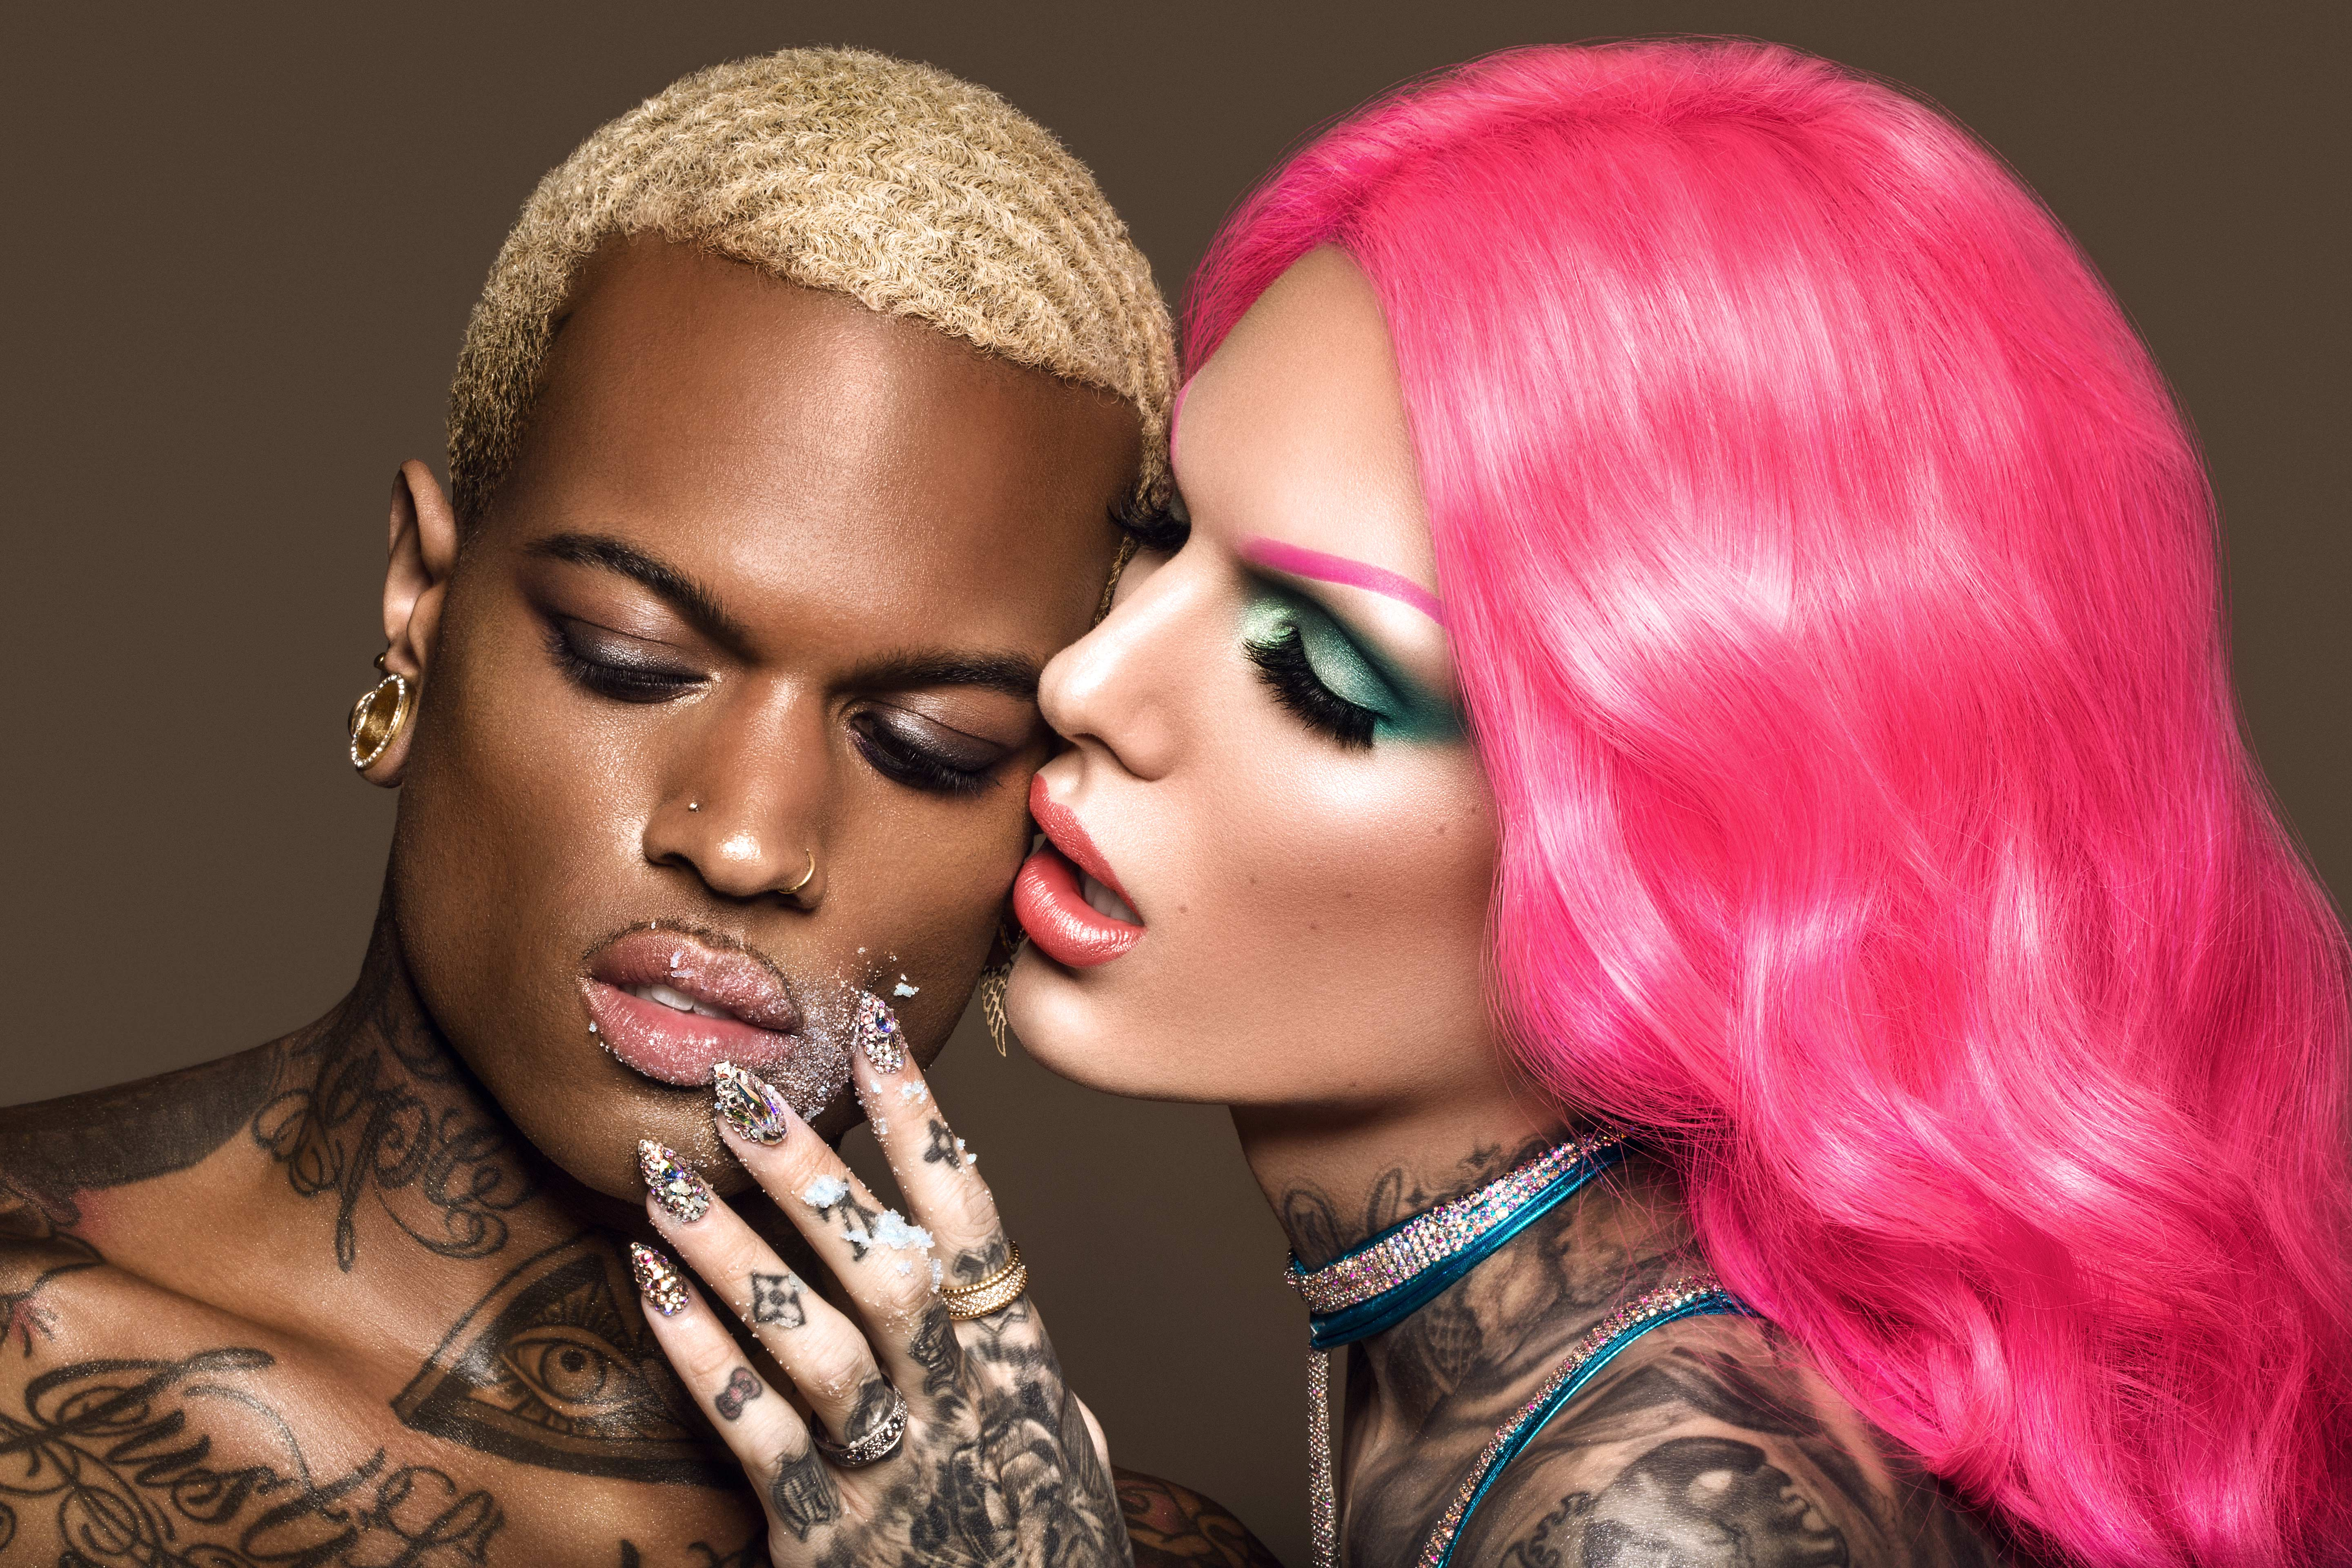 6 41 pm jettelag ig idfcemely jeffree star cosmetics jeffree star cosmetics Jeffree Star Summer Chrome Campaign Photoshoot